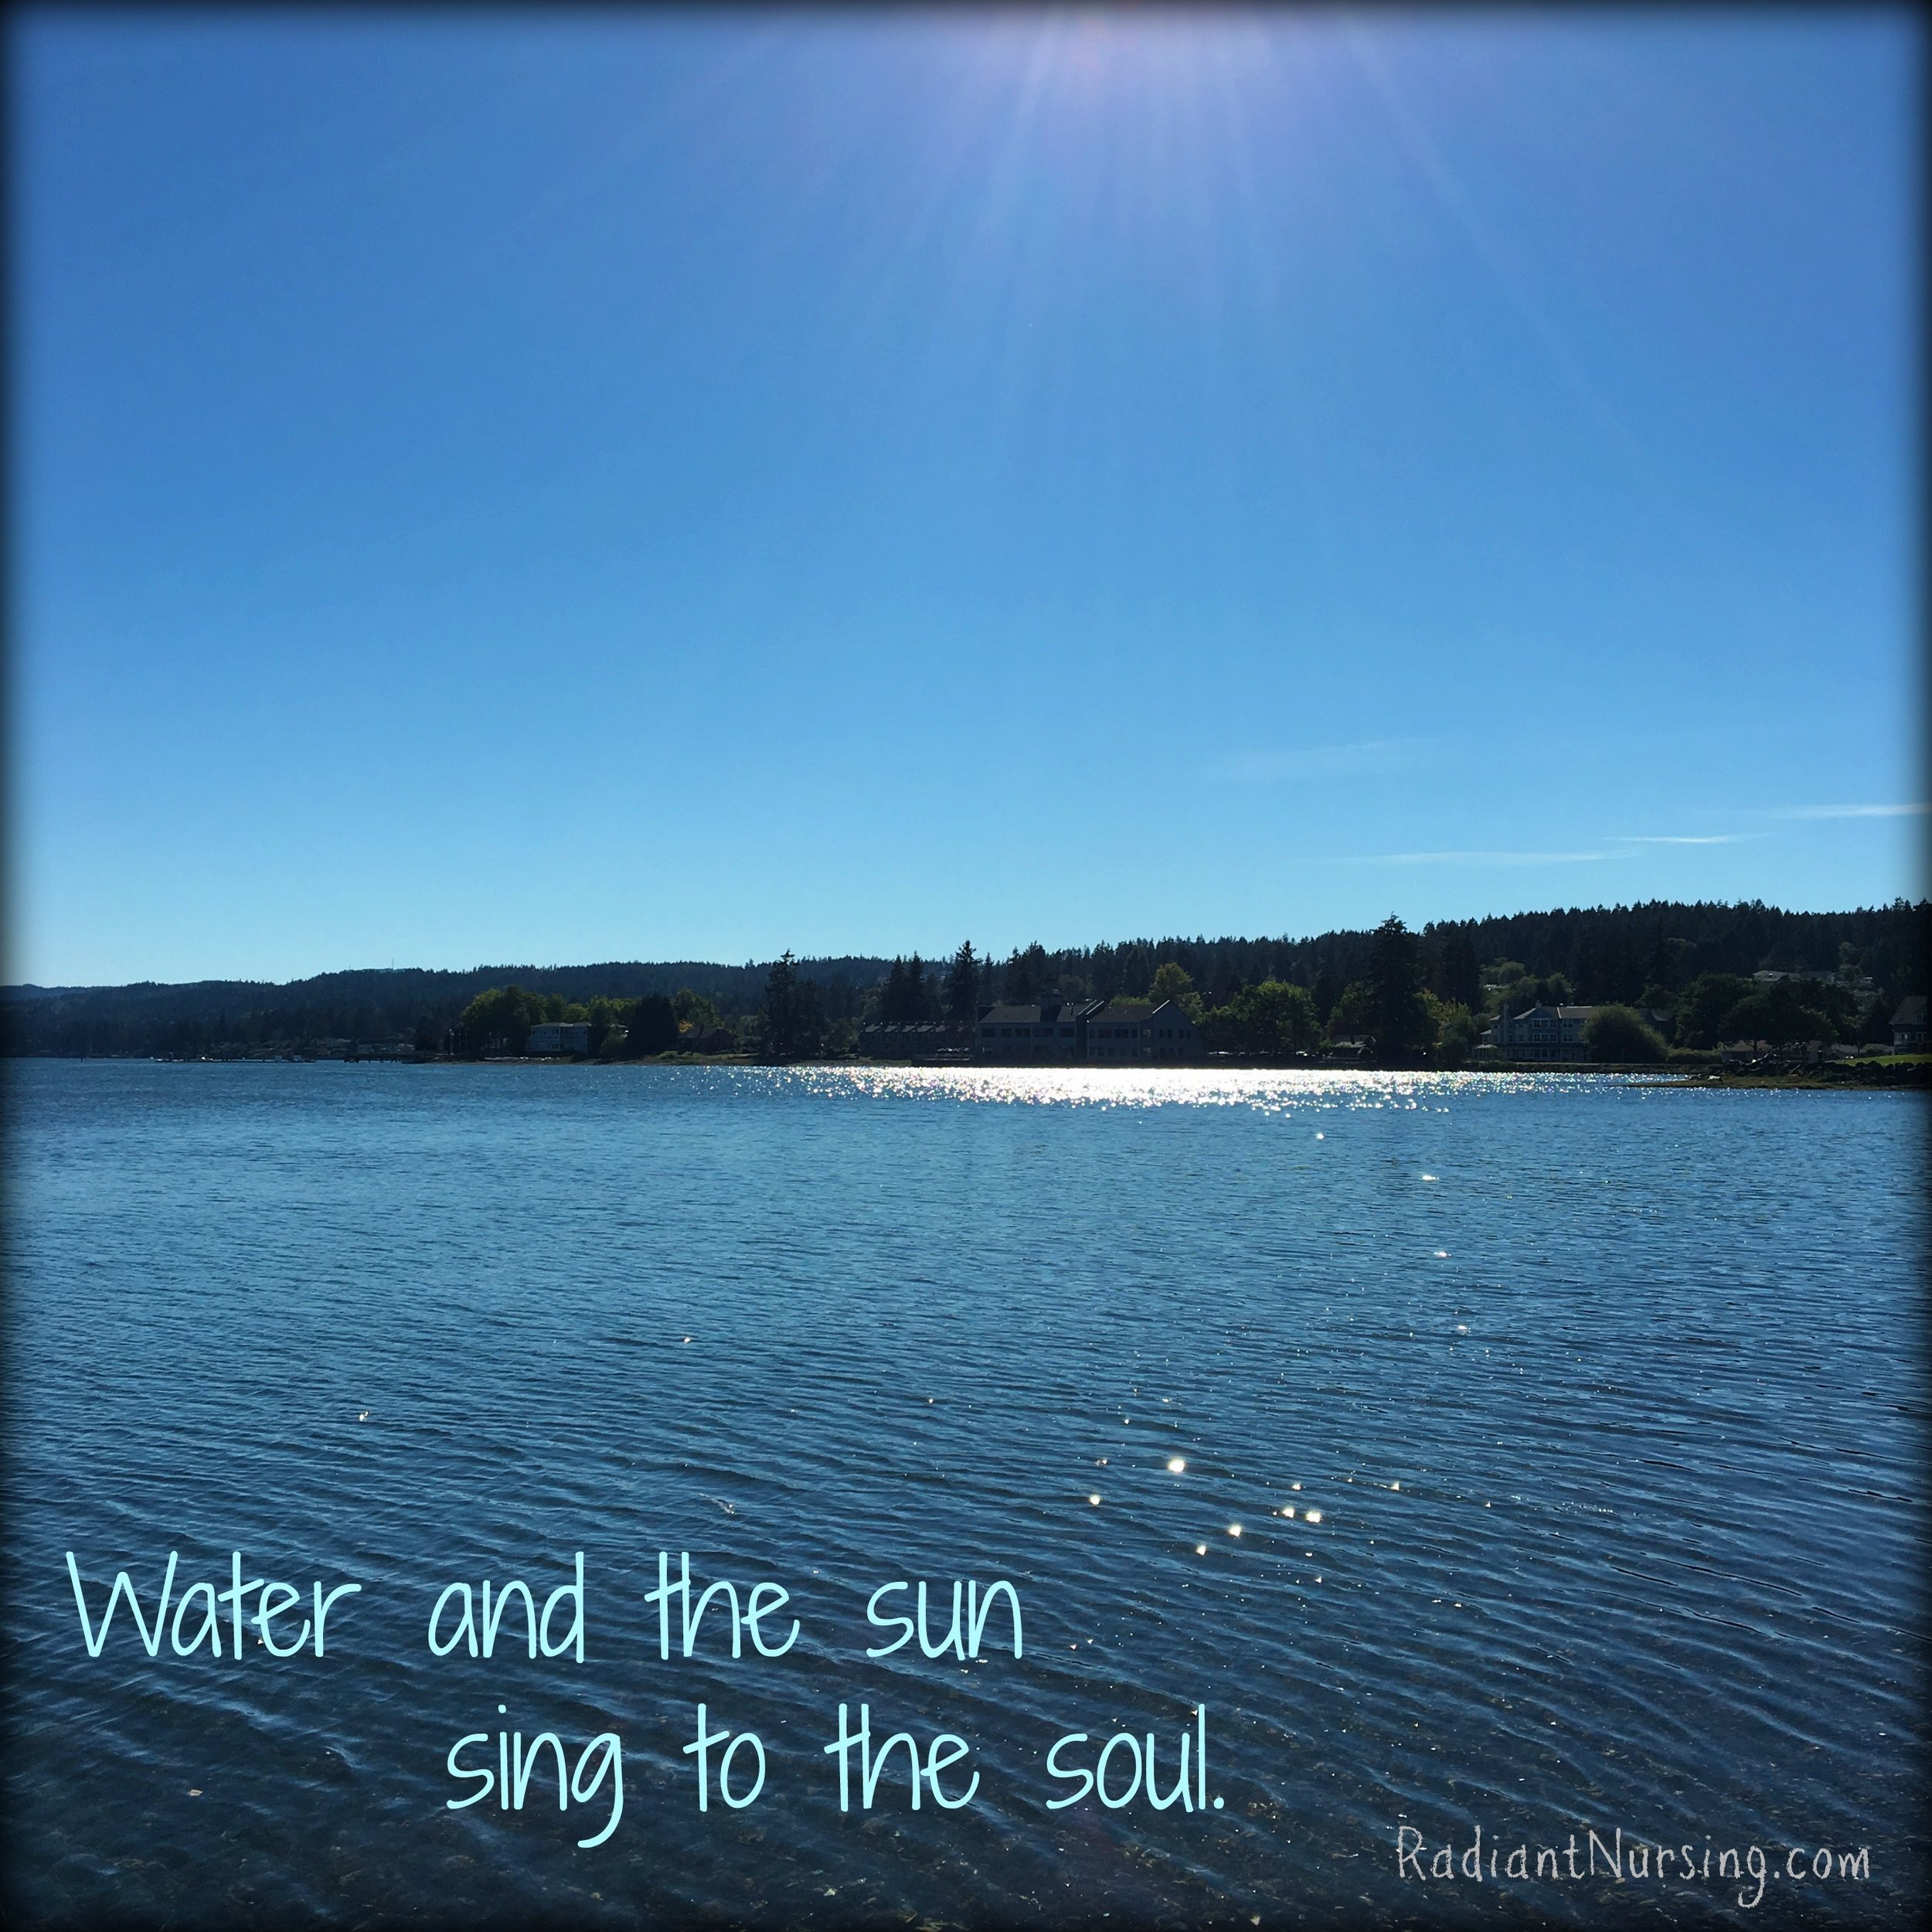 Water and the sun sing to the soul.